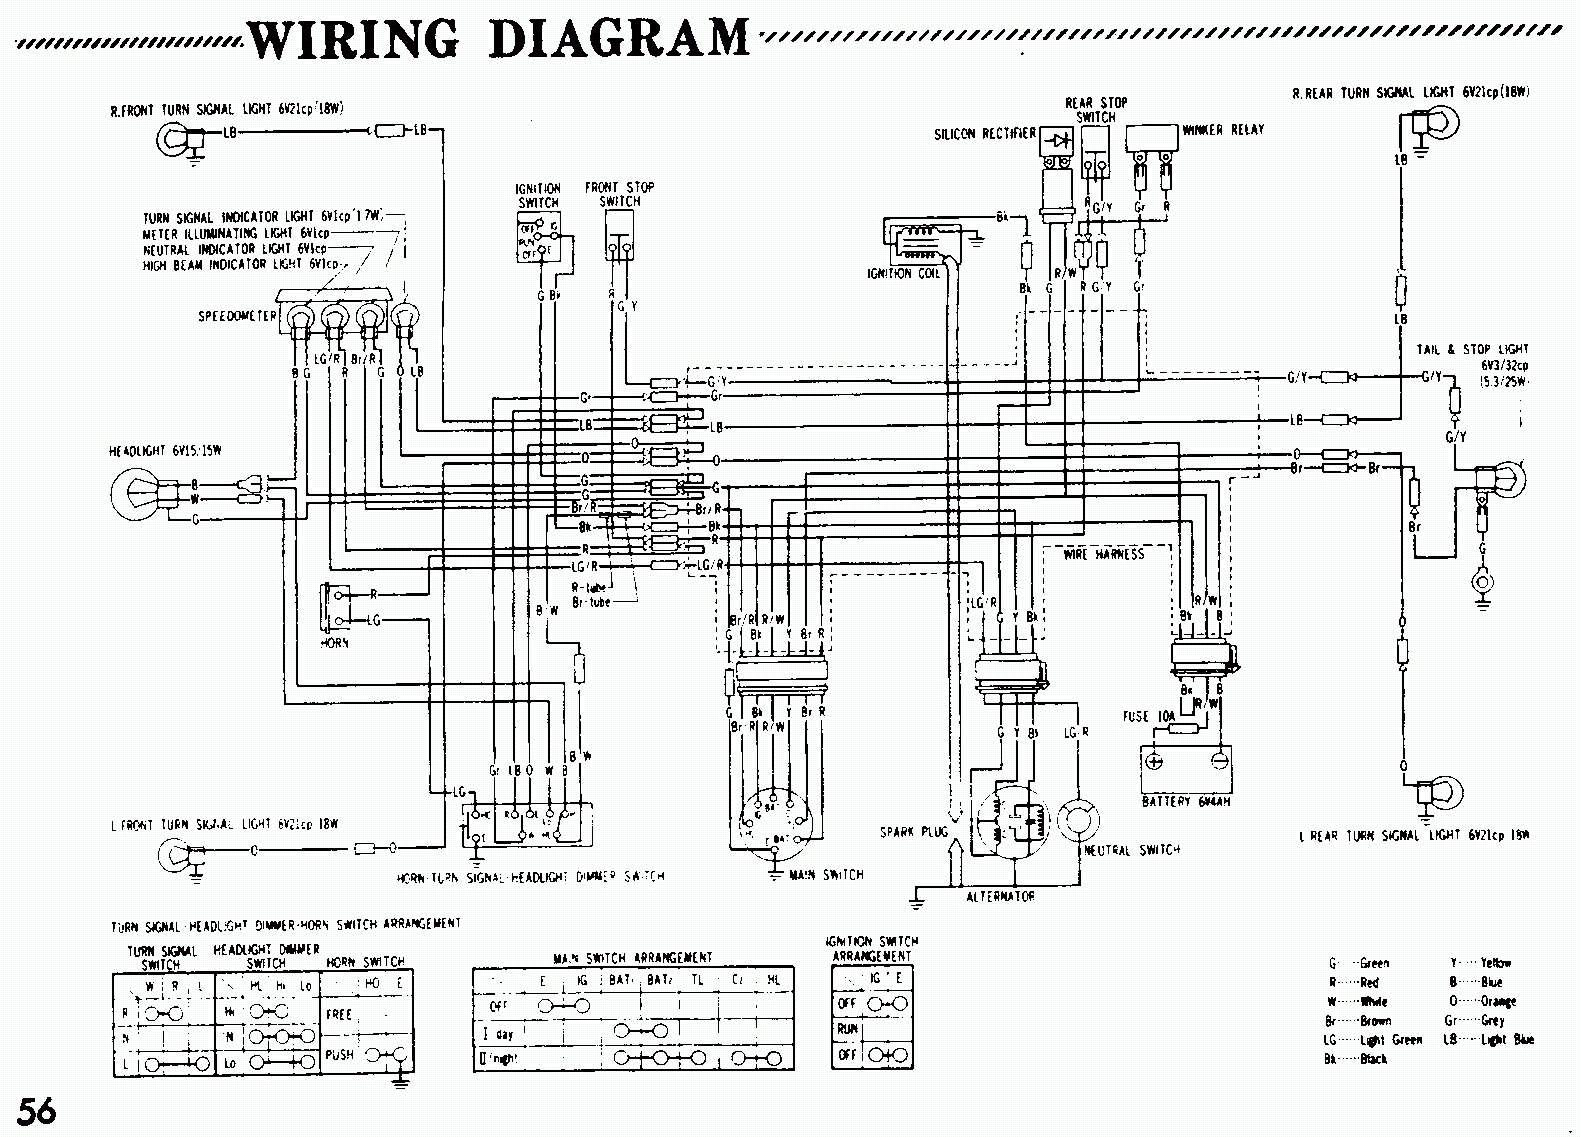 honda z50 wiring diagram wiring diagram rh blaknwyt co Wiring Harness Connectors Wiring Harness Connectors